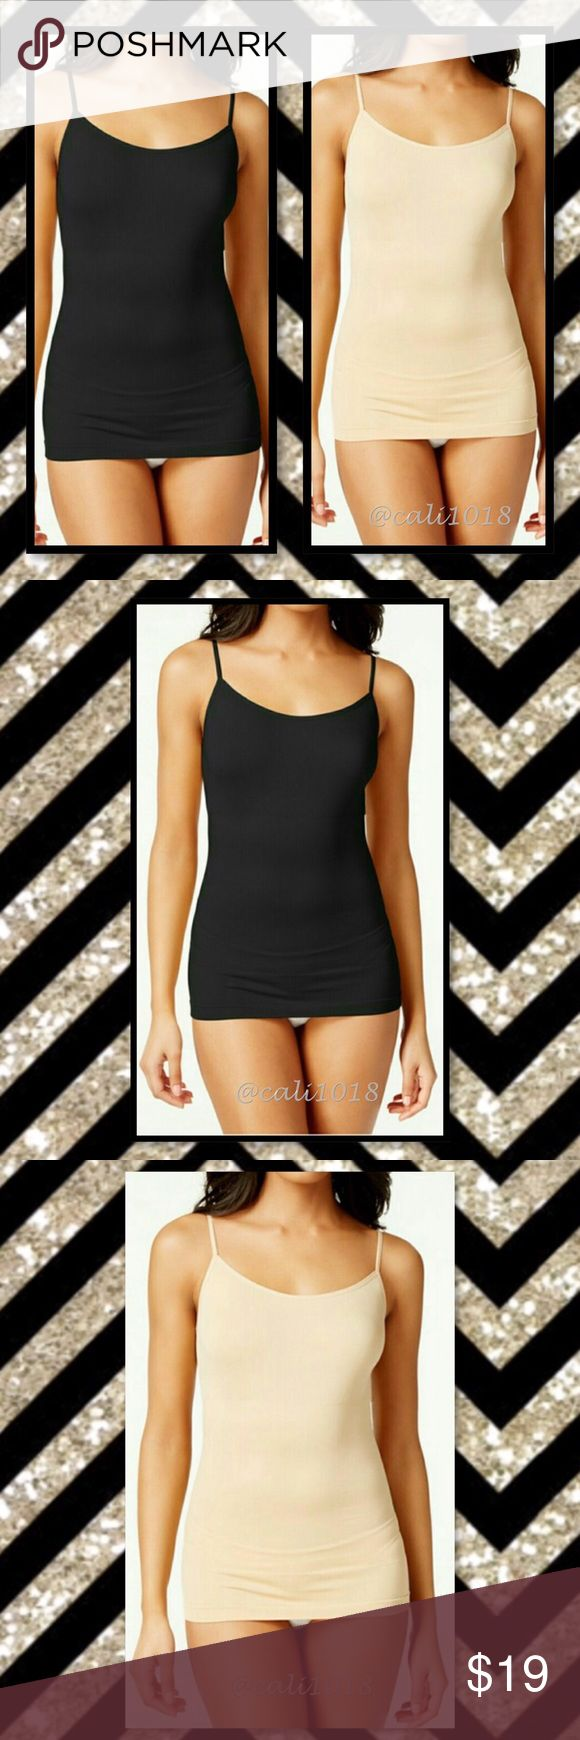 Black & Beige Cami Tops 1/$19 2/$30 New Beige and Black Seamless Cami One Size Color: Beige and Black Material: 90% Nylon 10% Spandex Made in China Size: One Size Fits Most 1/$19 or 2/$30 Price firm Glam Squad 2 You Tops Camisoles